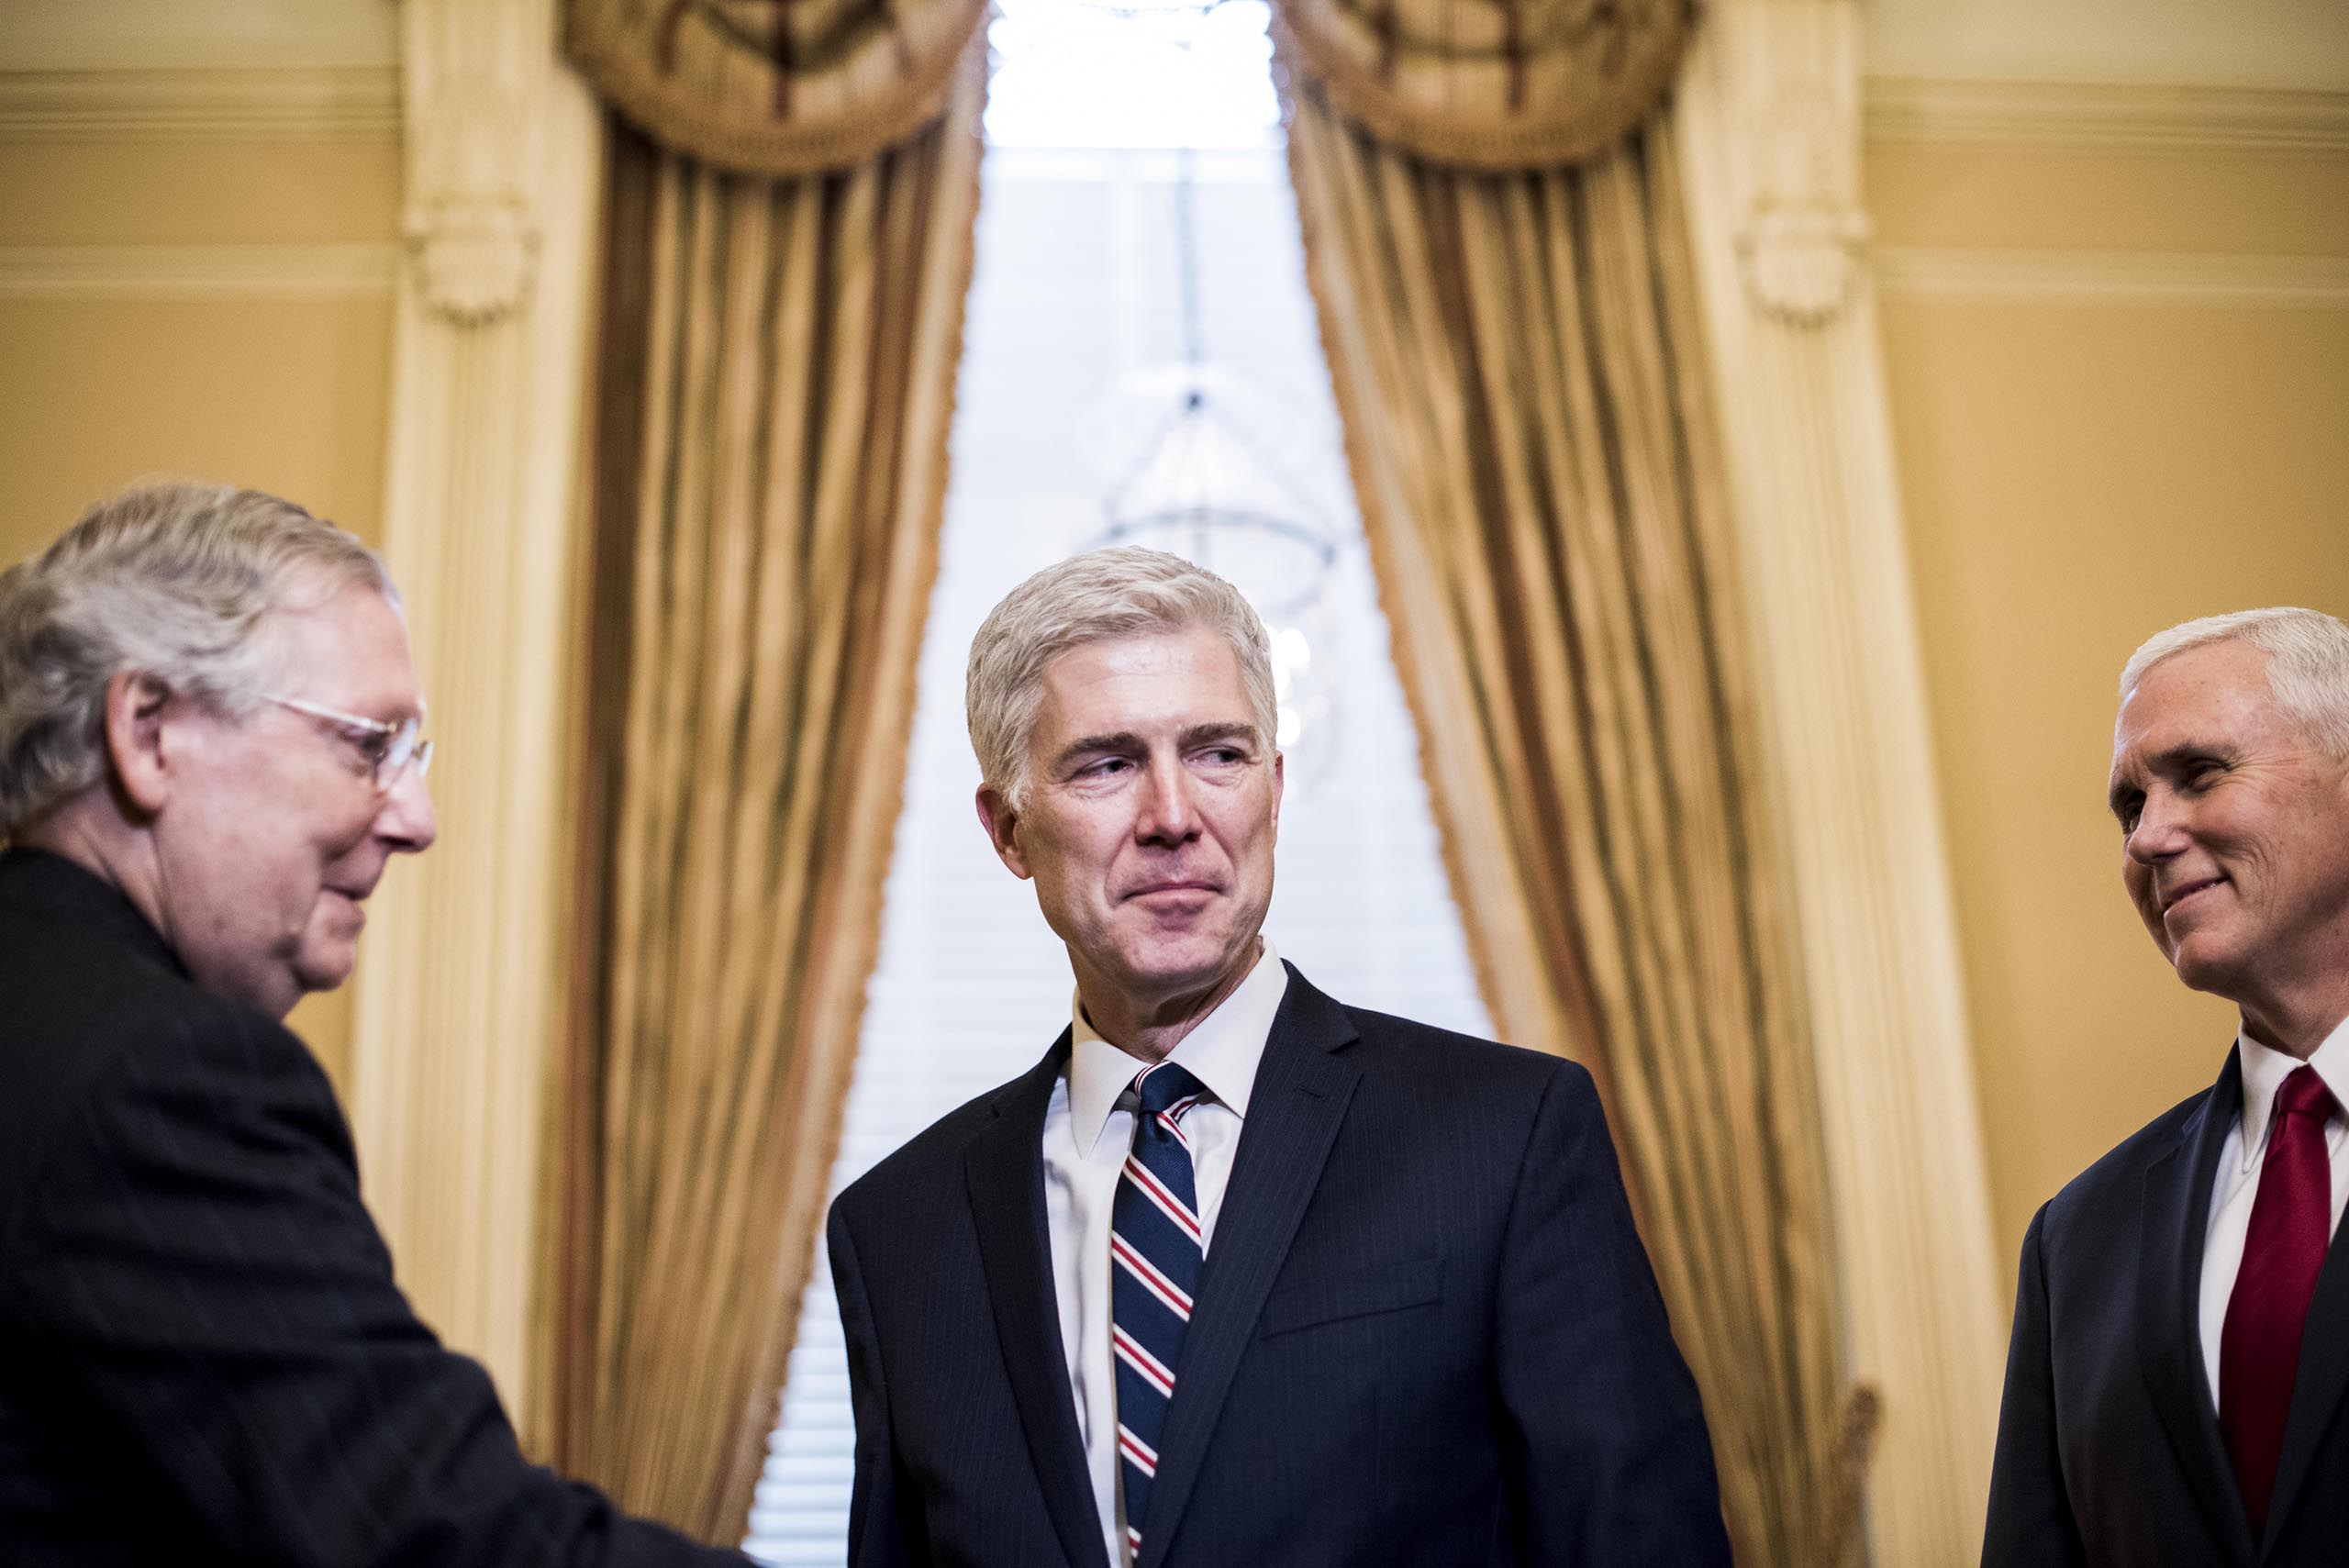 Gorsuch with Senate Majority Leader Mitch McConnell (R-TN) and Vice President Mike Pence,on Capitol Hill in Washington, D.C., Feb. 1, 2017.